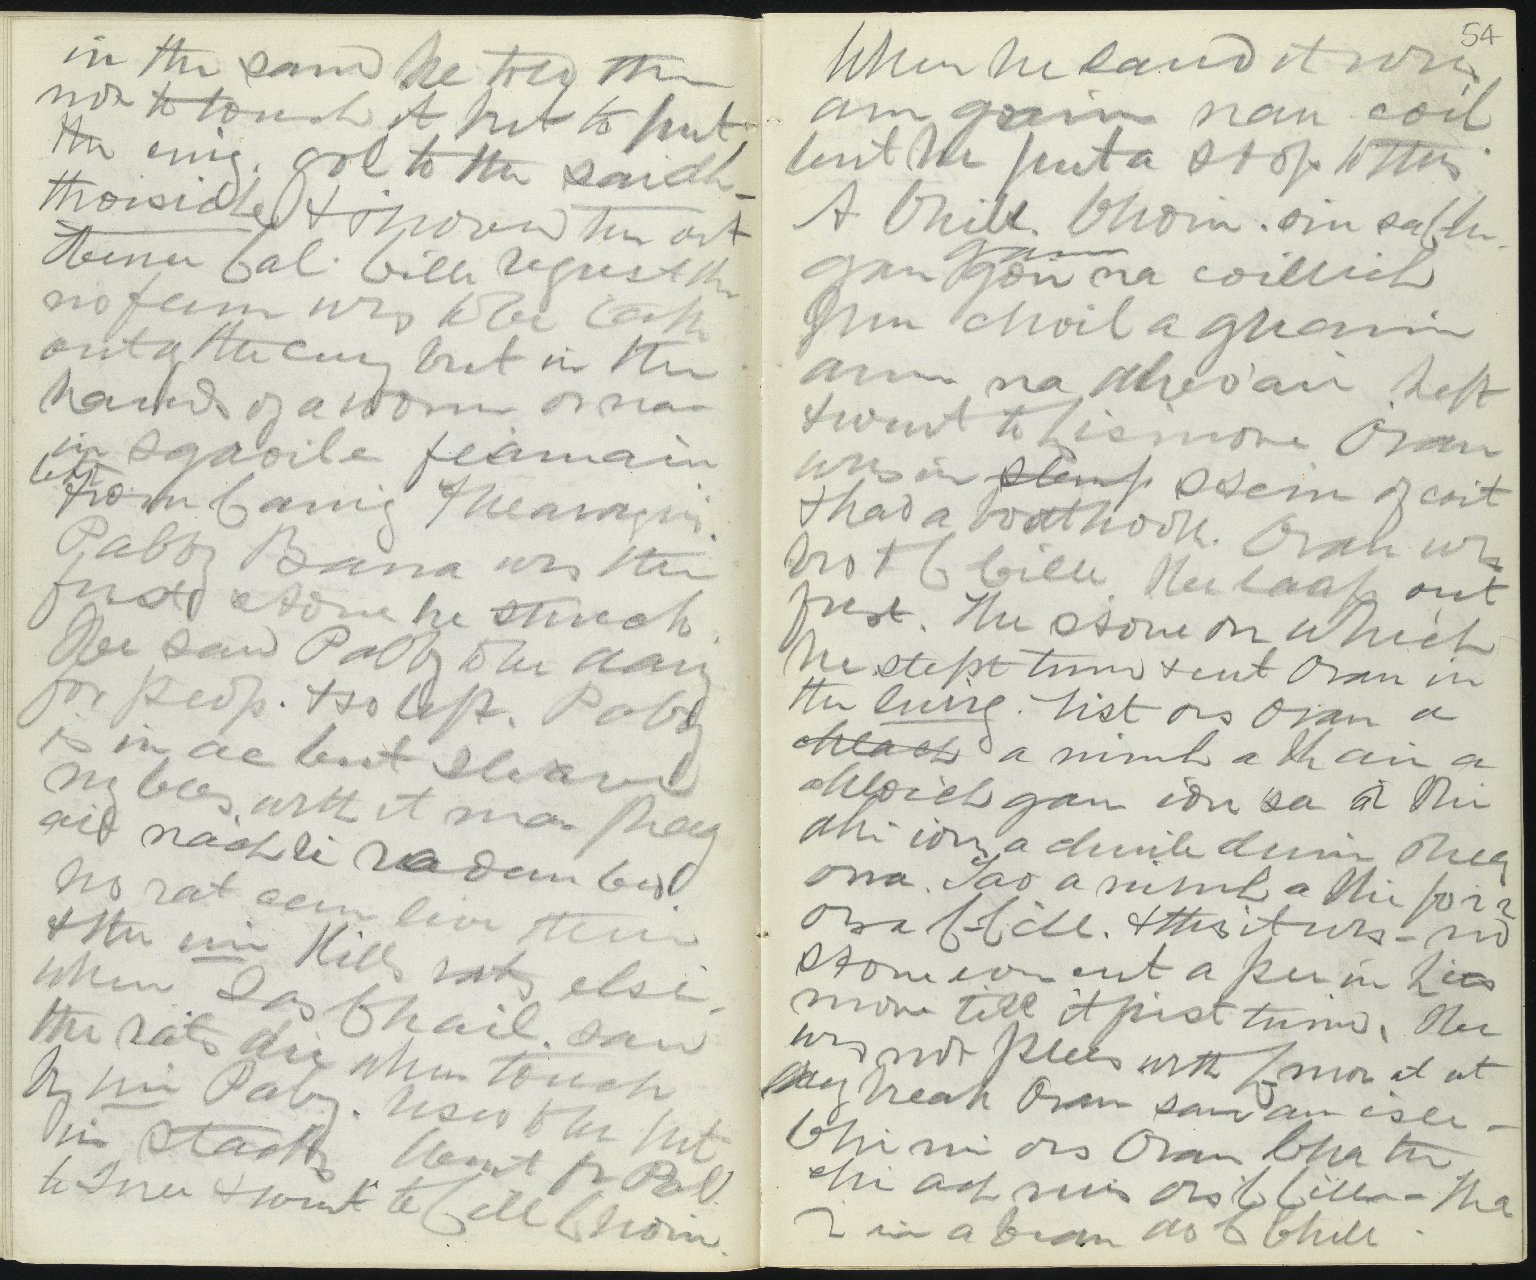 Field Notebook, ff.53v-54r